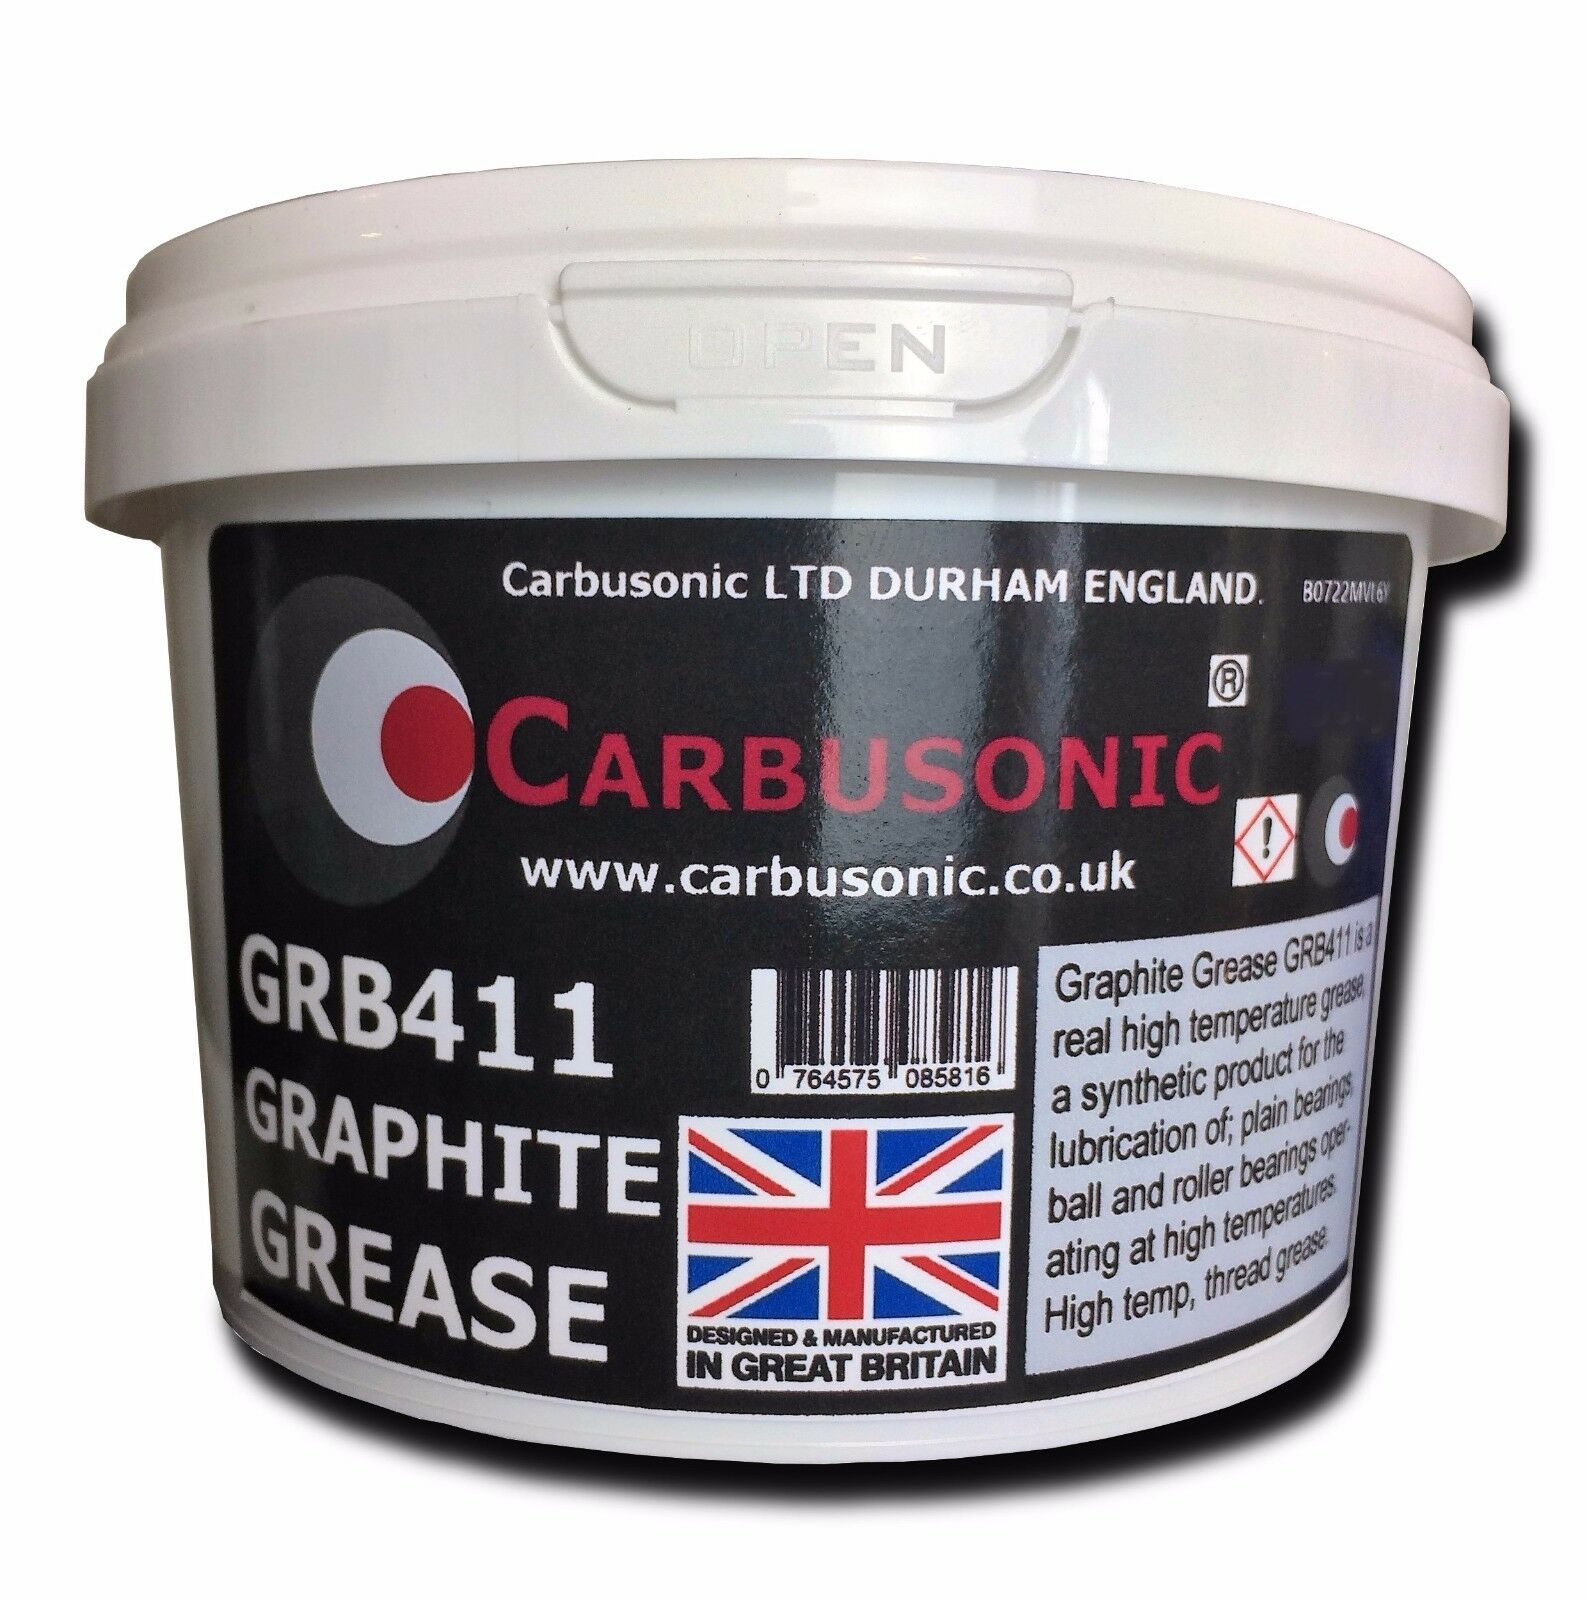 Graphite grease fully synthetic high temperature grease, graphite thread grease